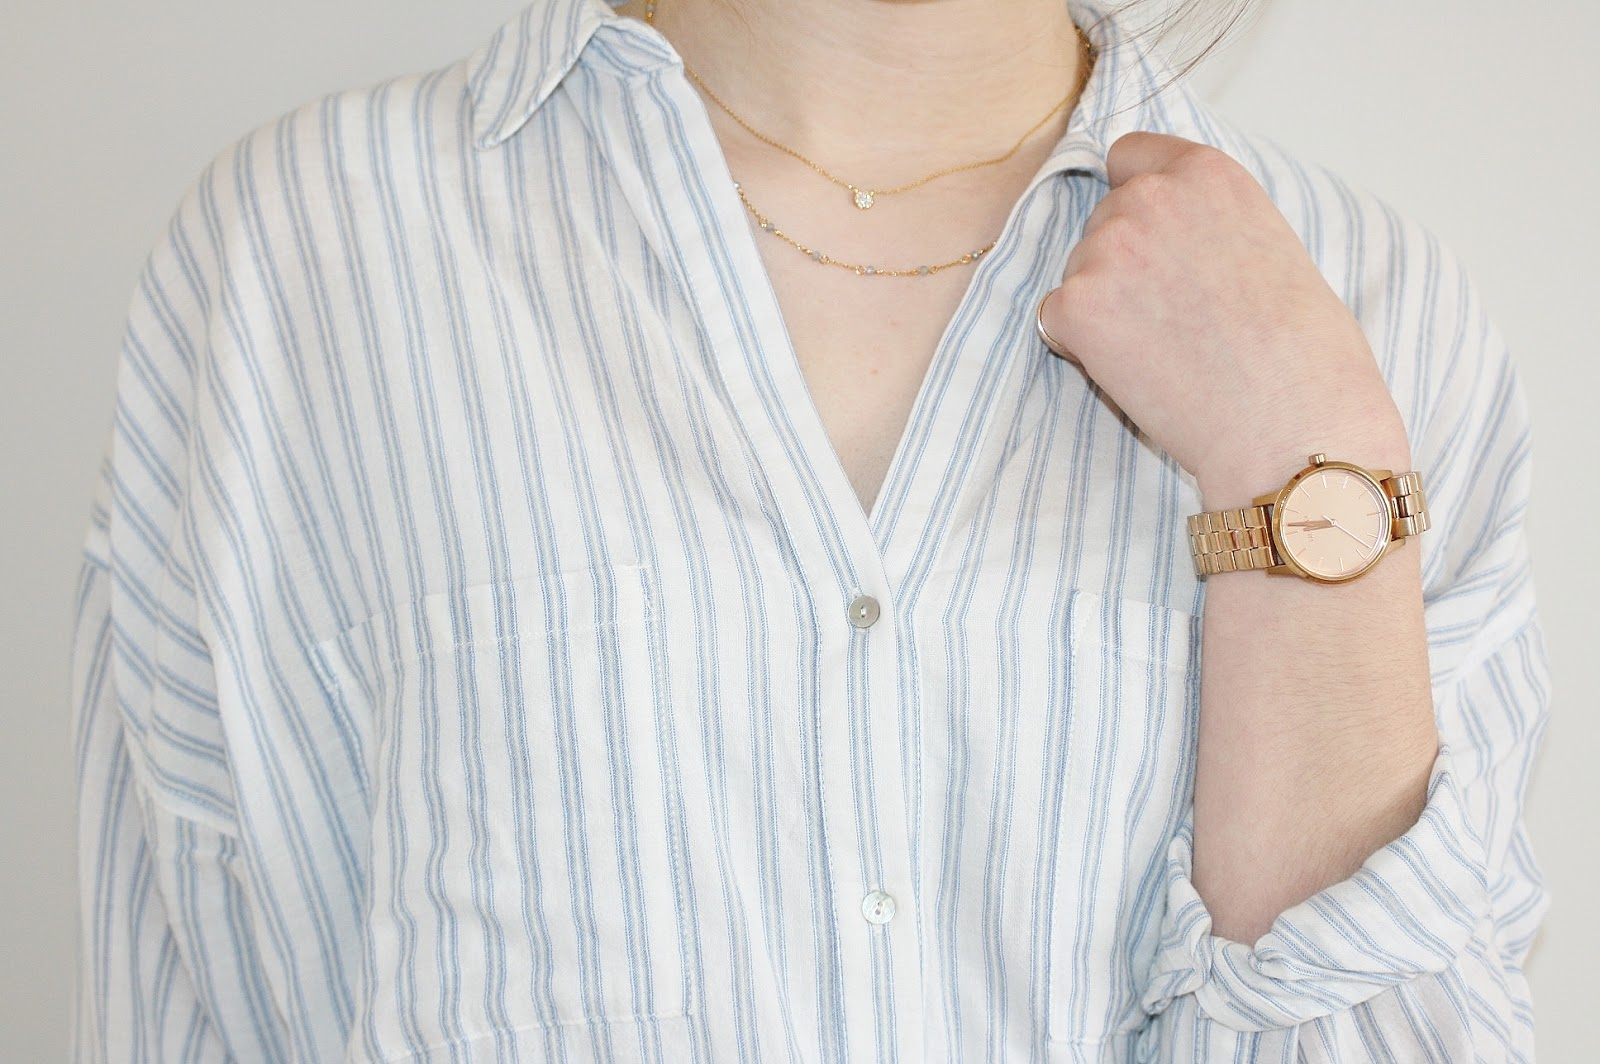 Katherine Penney Chic Fashion Style Shirt Zara Stripes Gold Delicate Jewellery Pretty Modern Casual Smart Classic